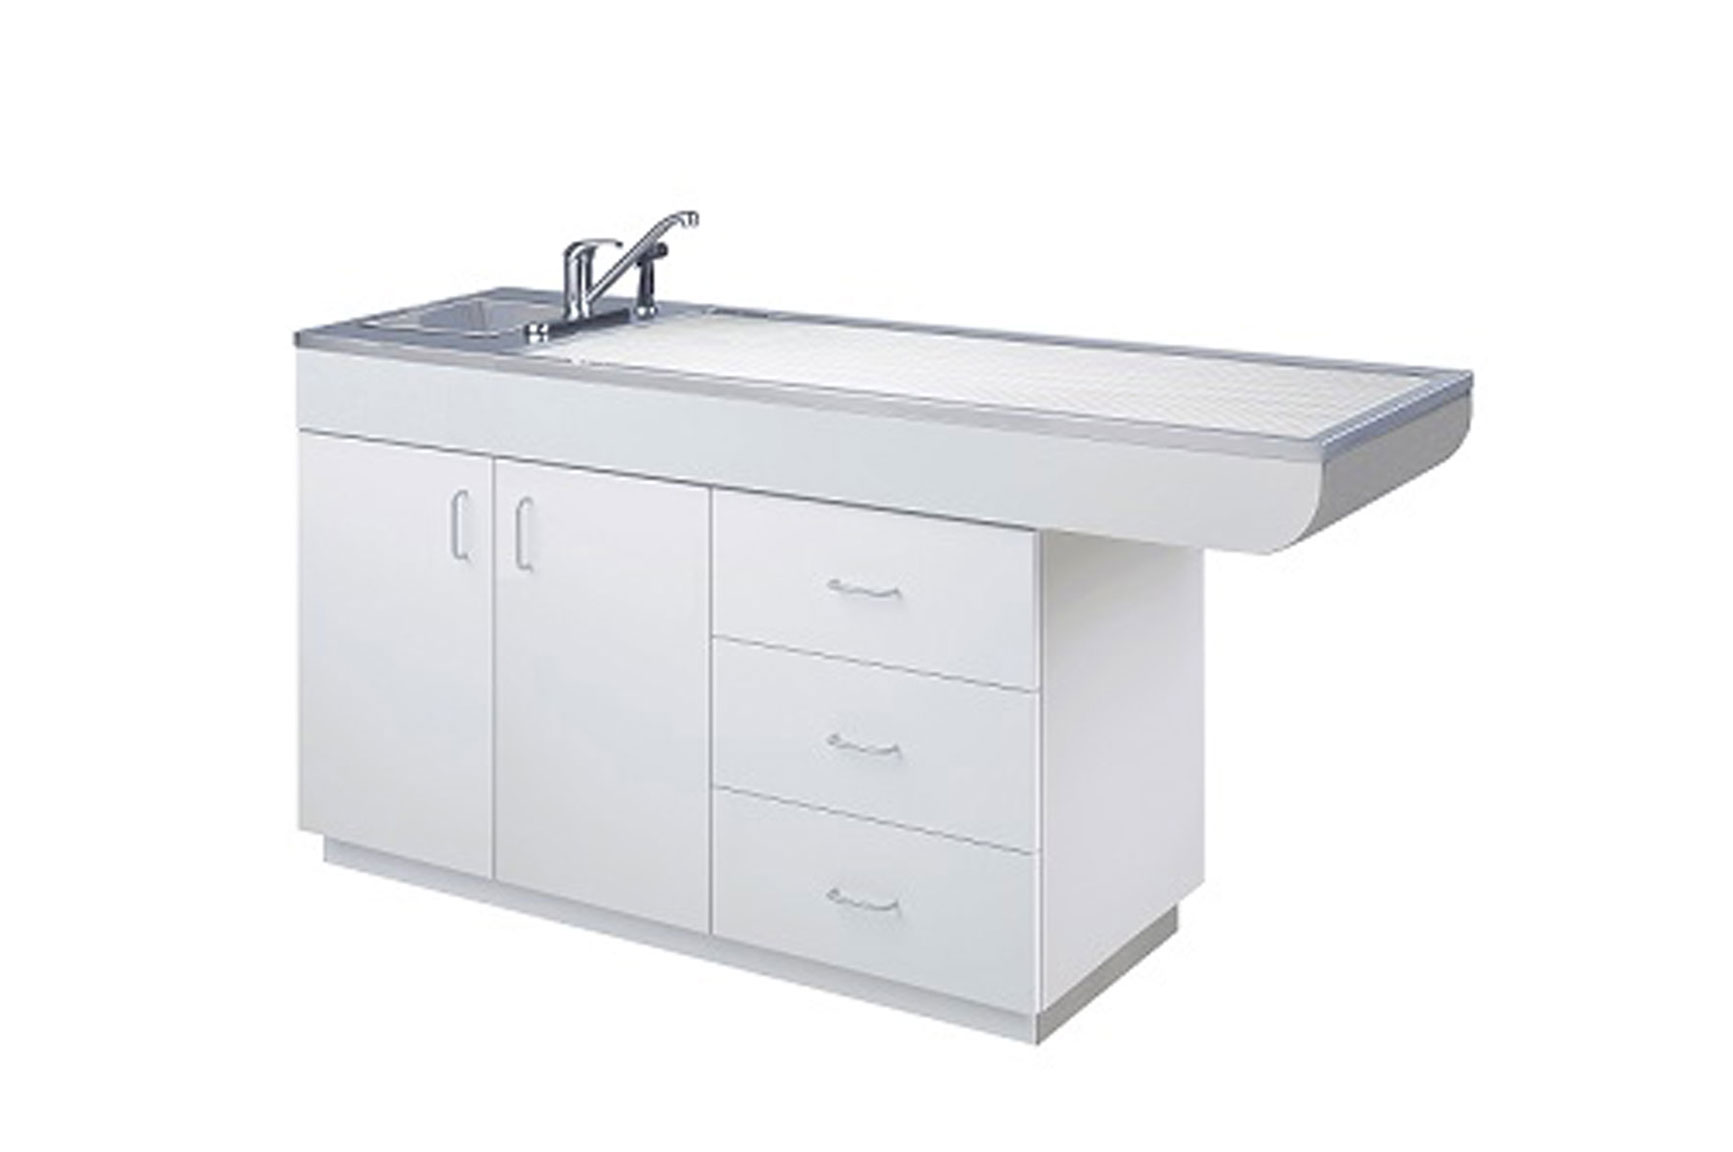 Cut-away-wetprep-cabinet-with-sink